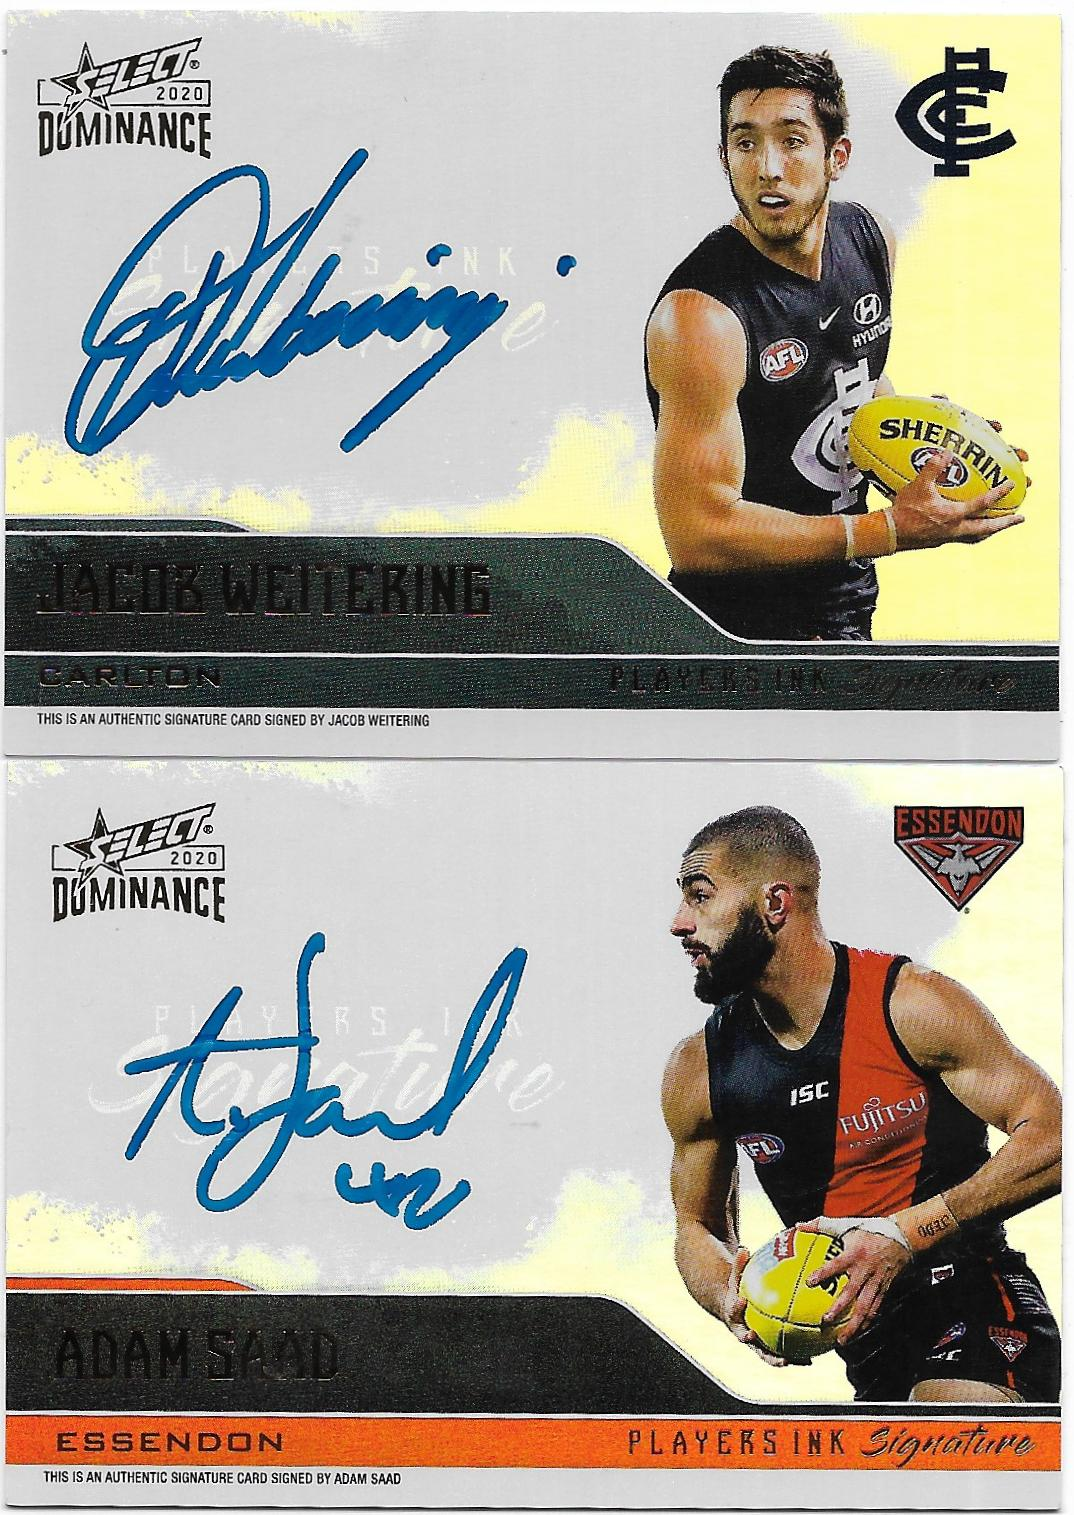 Player Ink Signatures